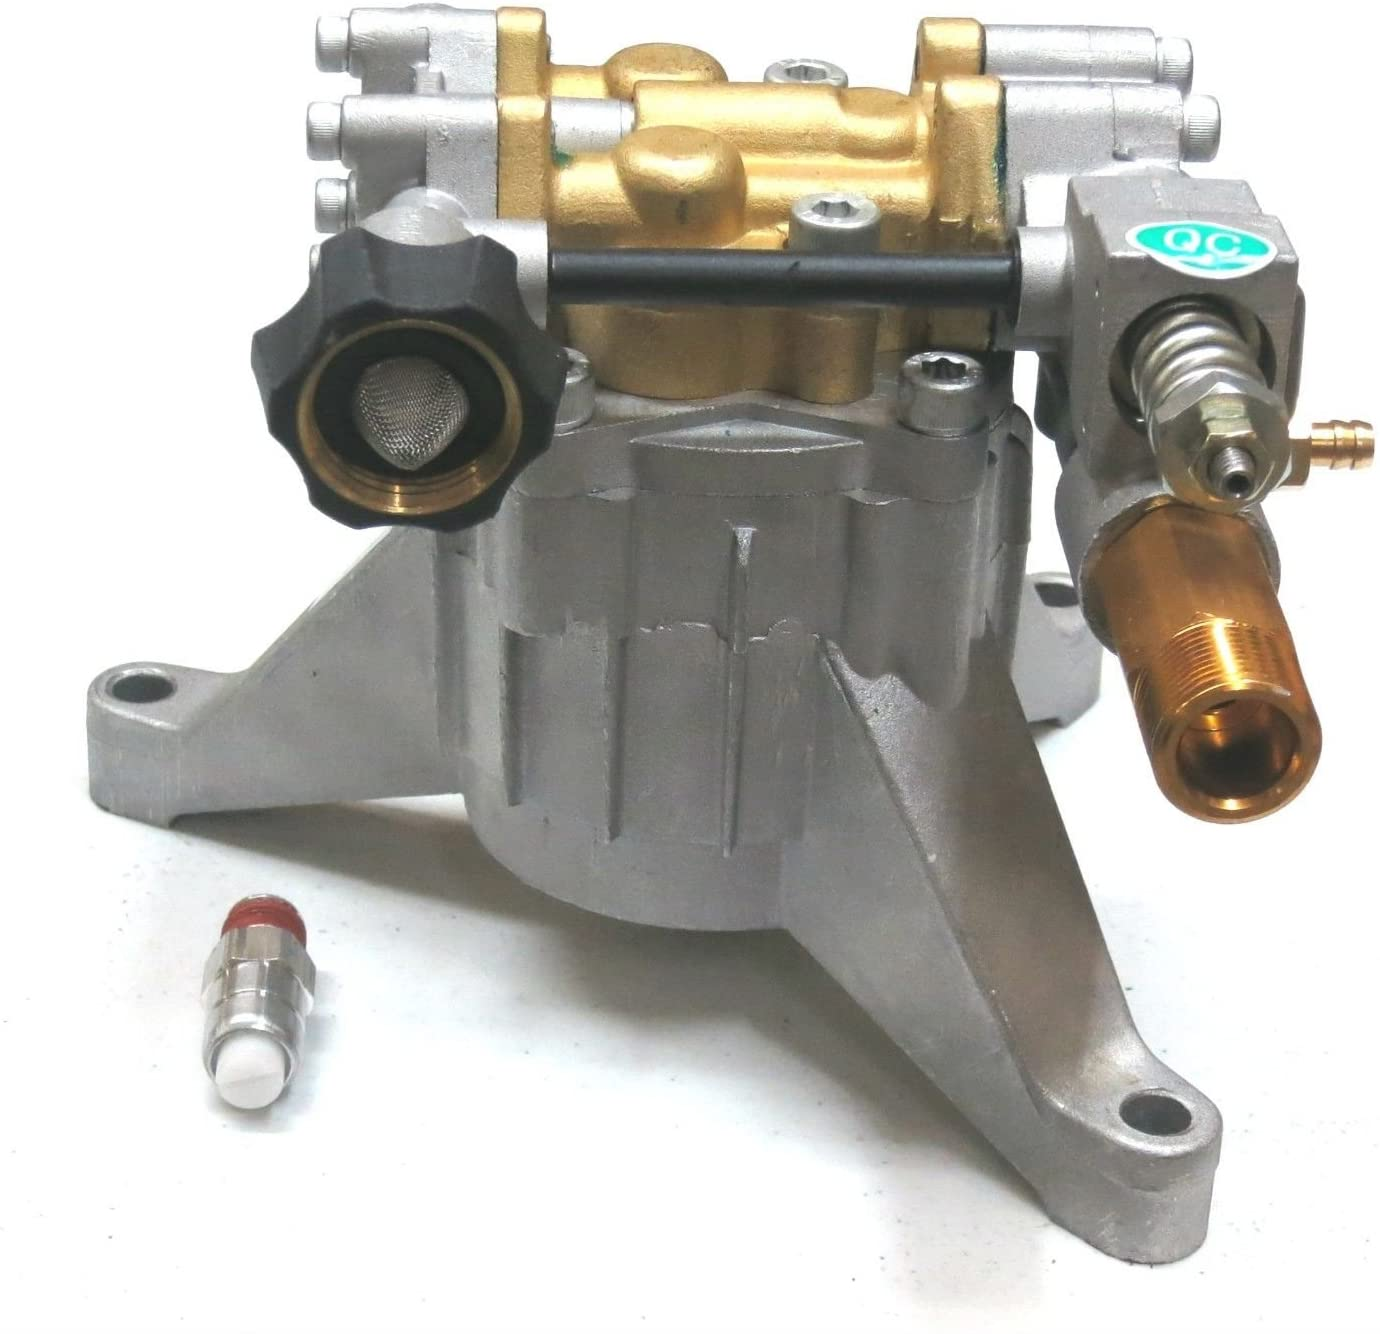 New 3100 PSI Upgraded POWER PRESSURE WASHER WATER PUMP Delta DT2200P DT2400CS by The ROP Shop